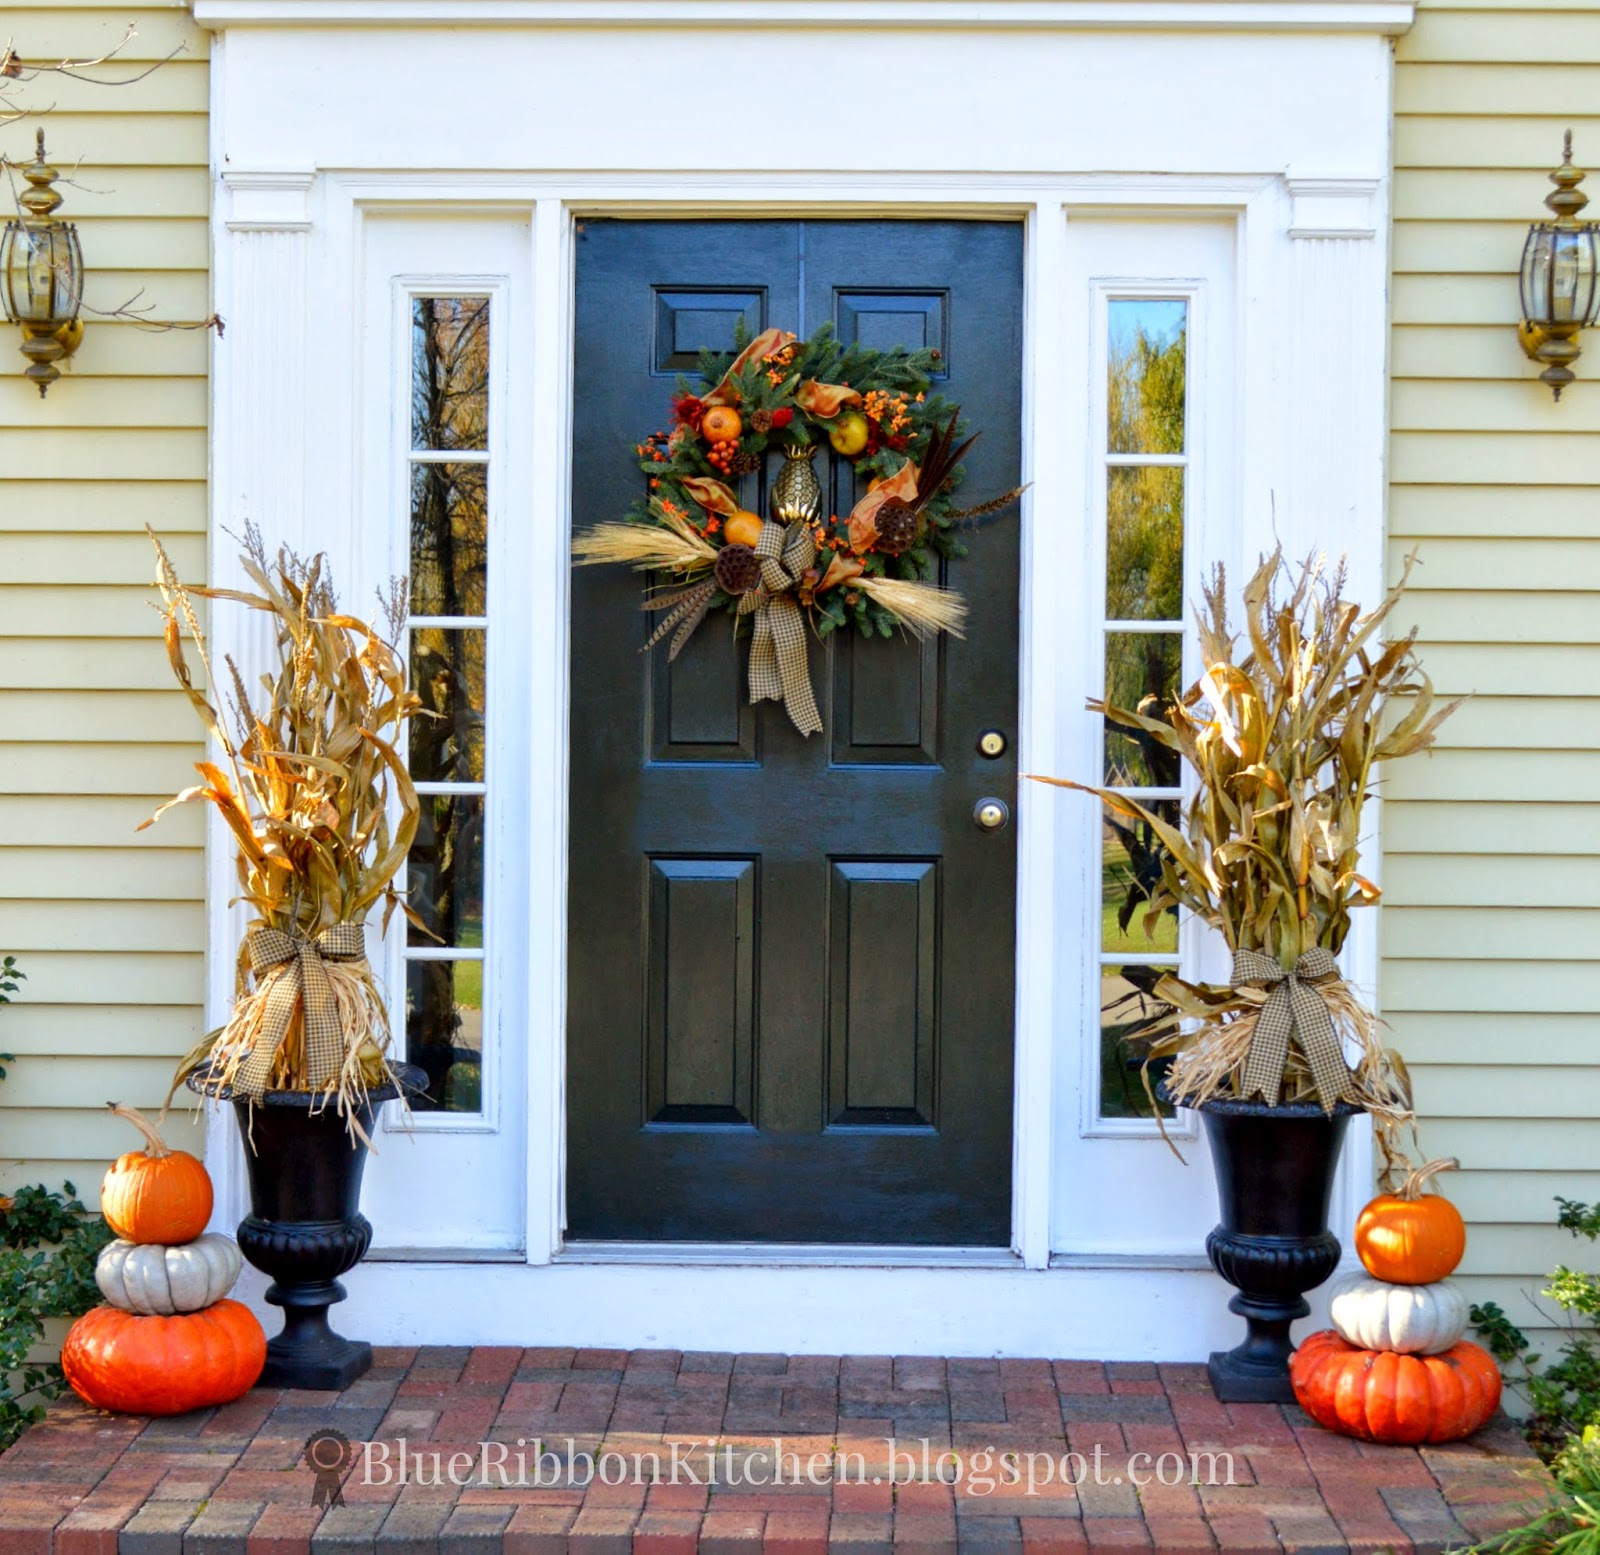 Blue Ribbon Kitchen: Recycling Corn Stalks for a Harvest Door